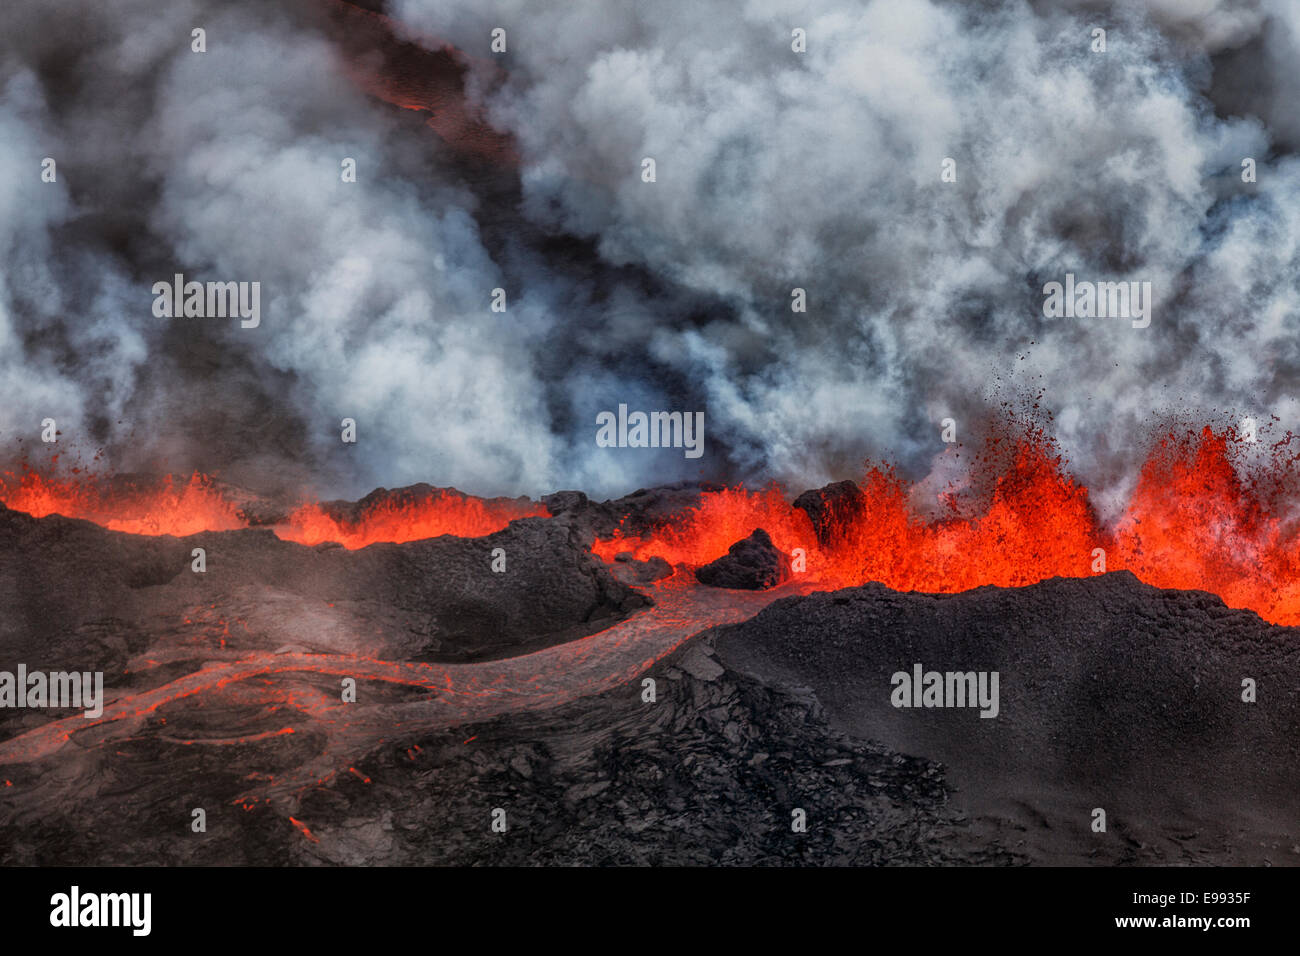 Lava and plumes from the Holuhraun Fissure, Bardarbunga Volcano, Iceland. - Stock Image